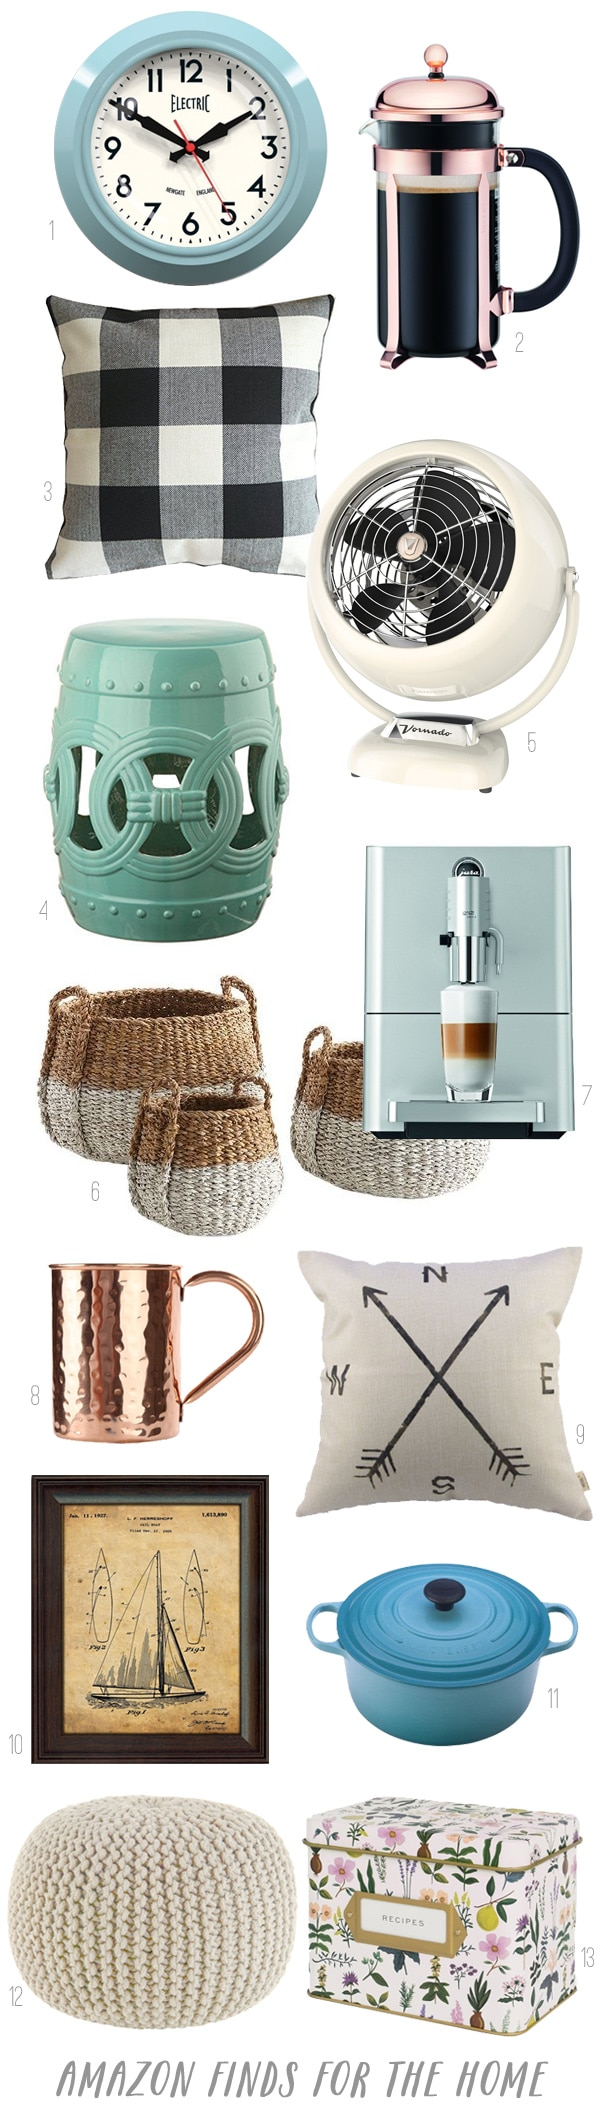 Home Decor Finds on Amazon - The Inspired Room